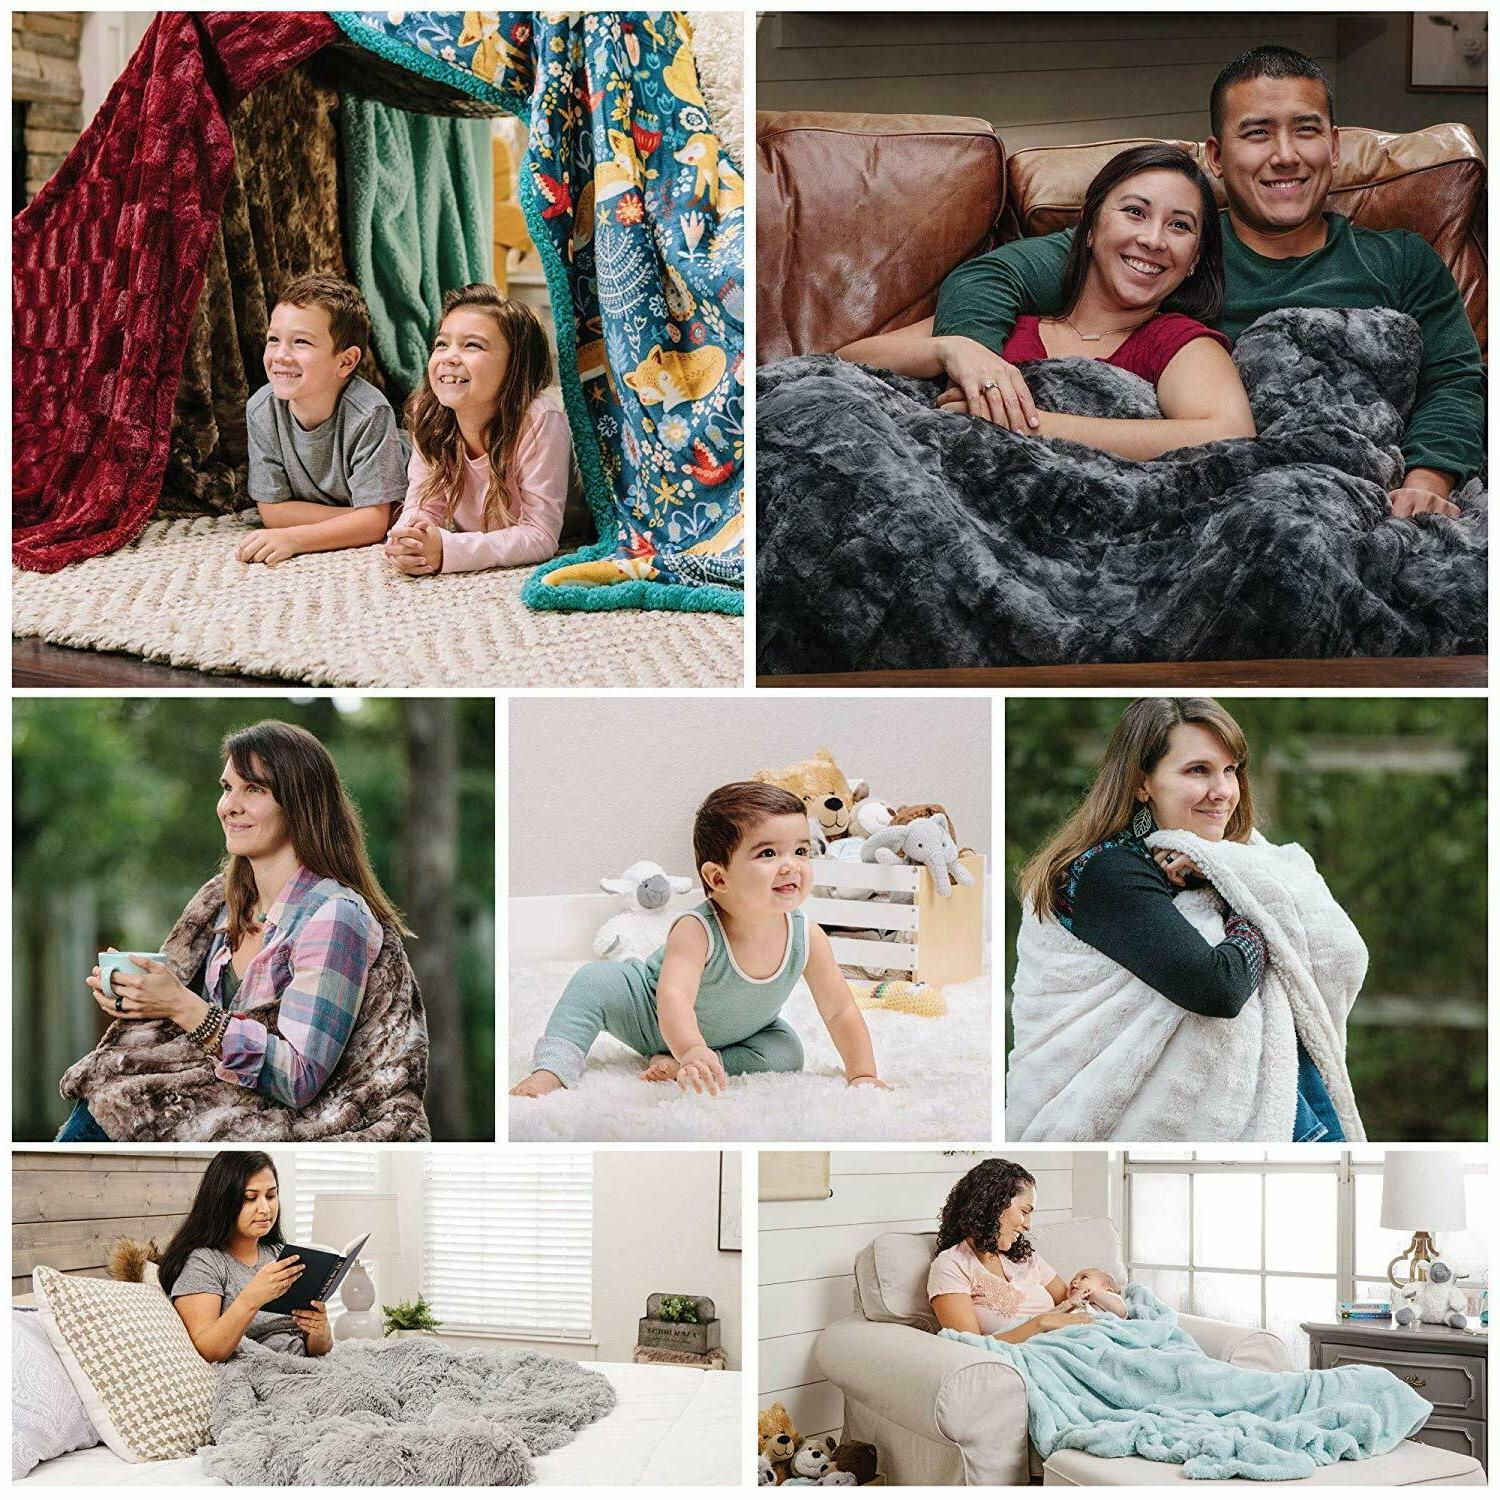 Chanasya 3-Piece Soft Faux Blanket Cozy Sherpa with Covers